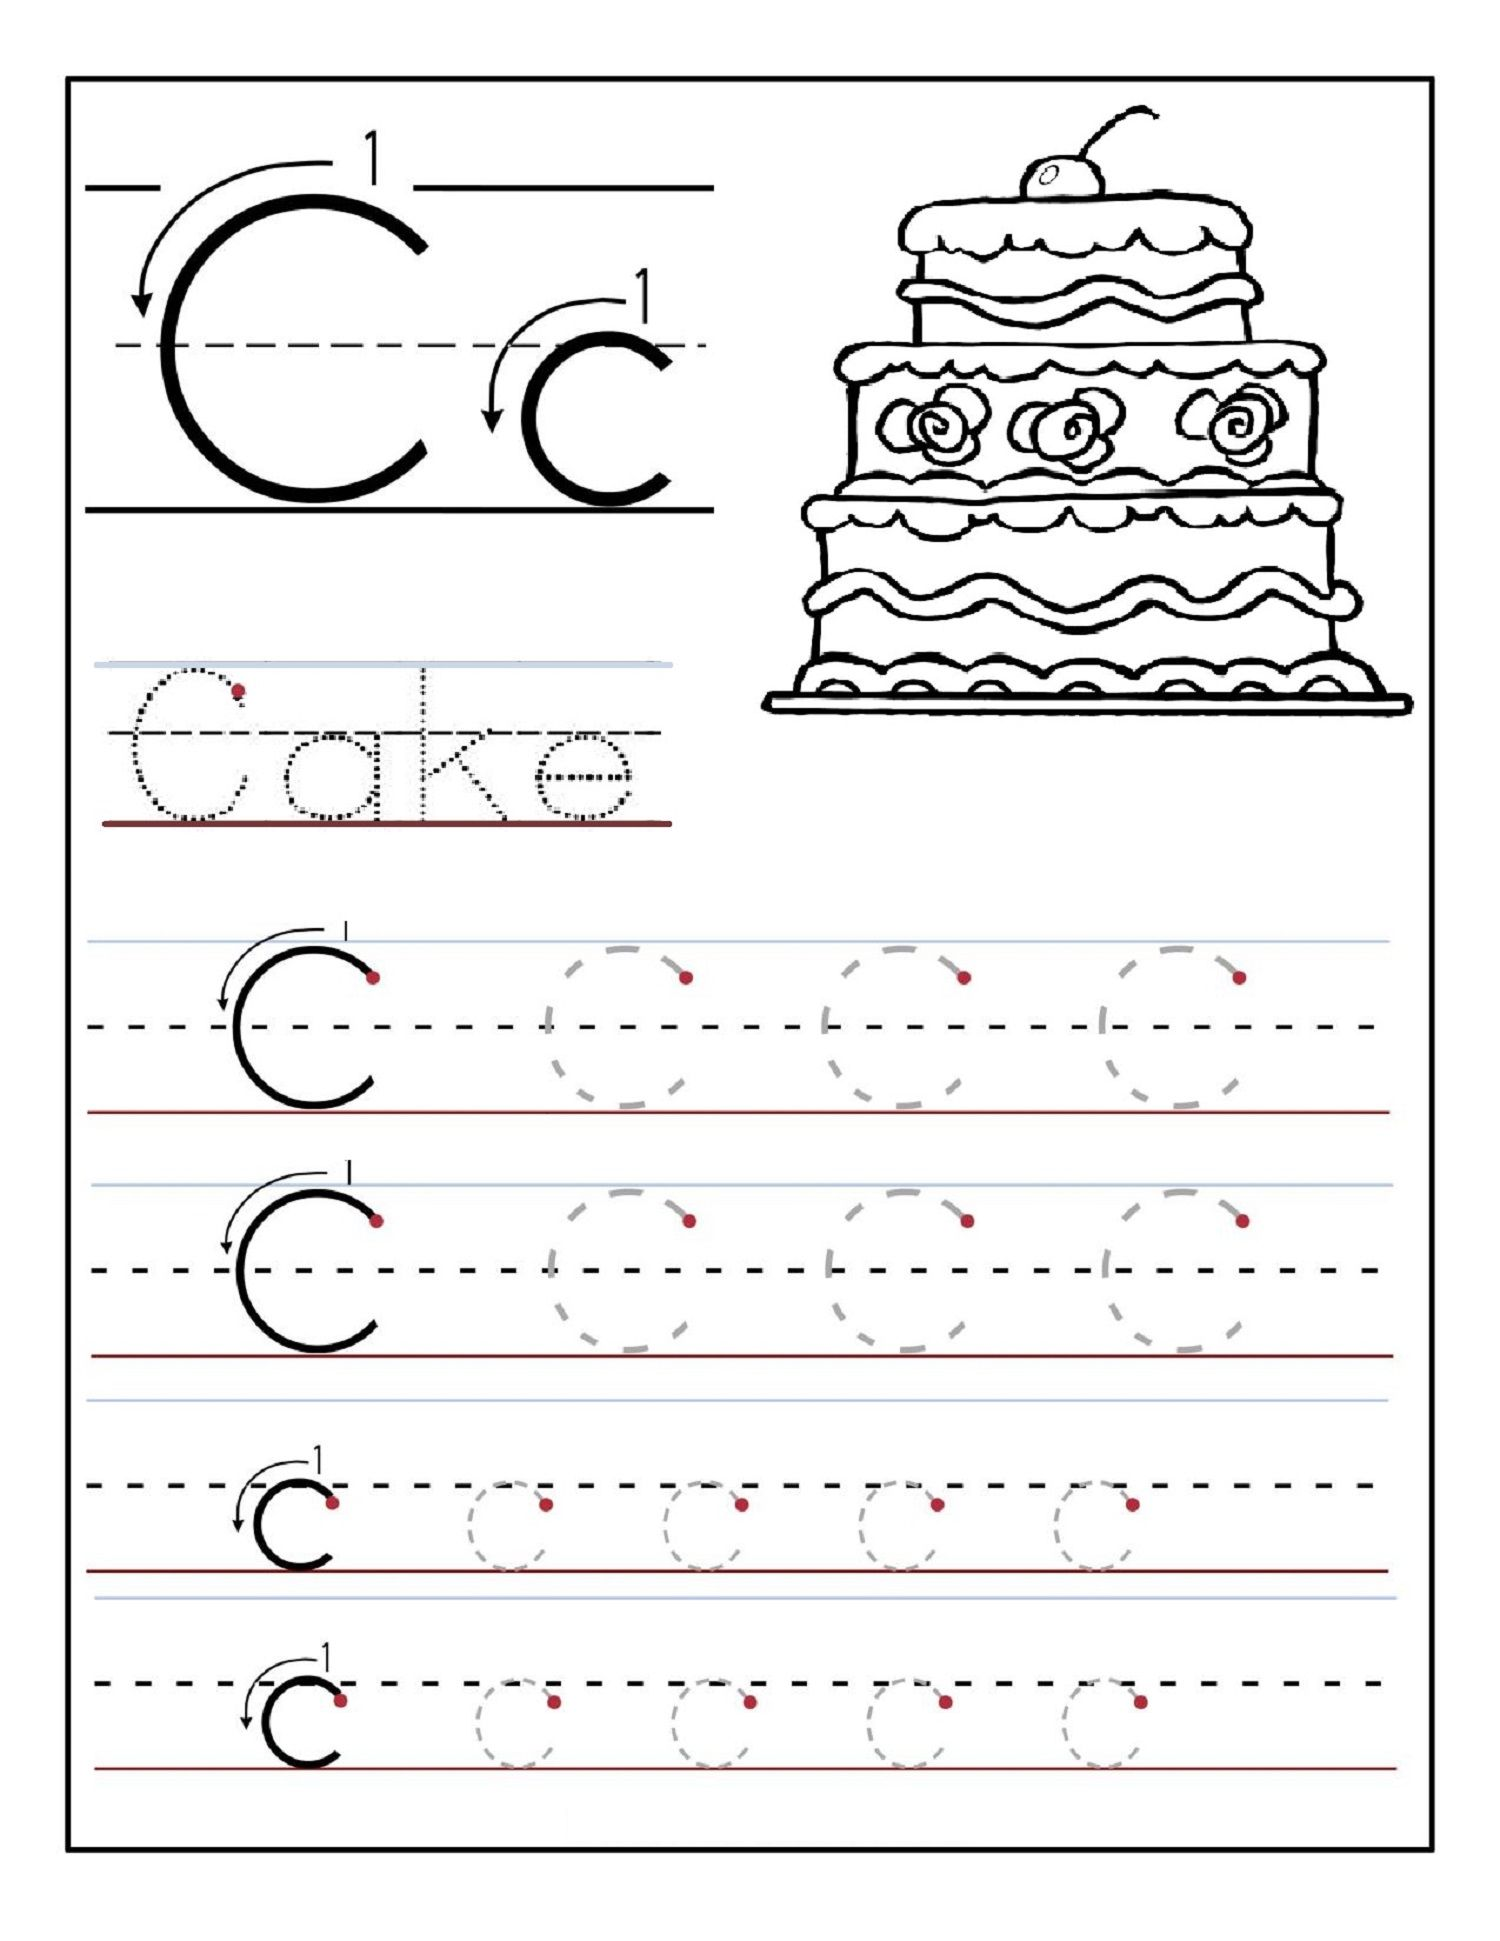 Alphabet Tracing Printables Best for Writing Introduction | Kids ...